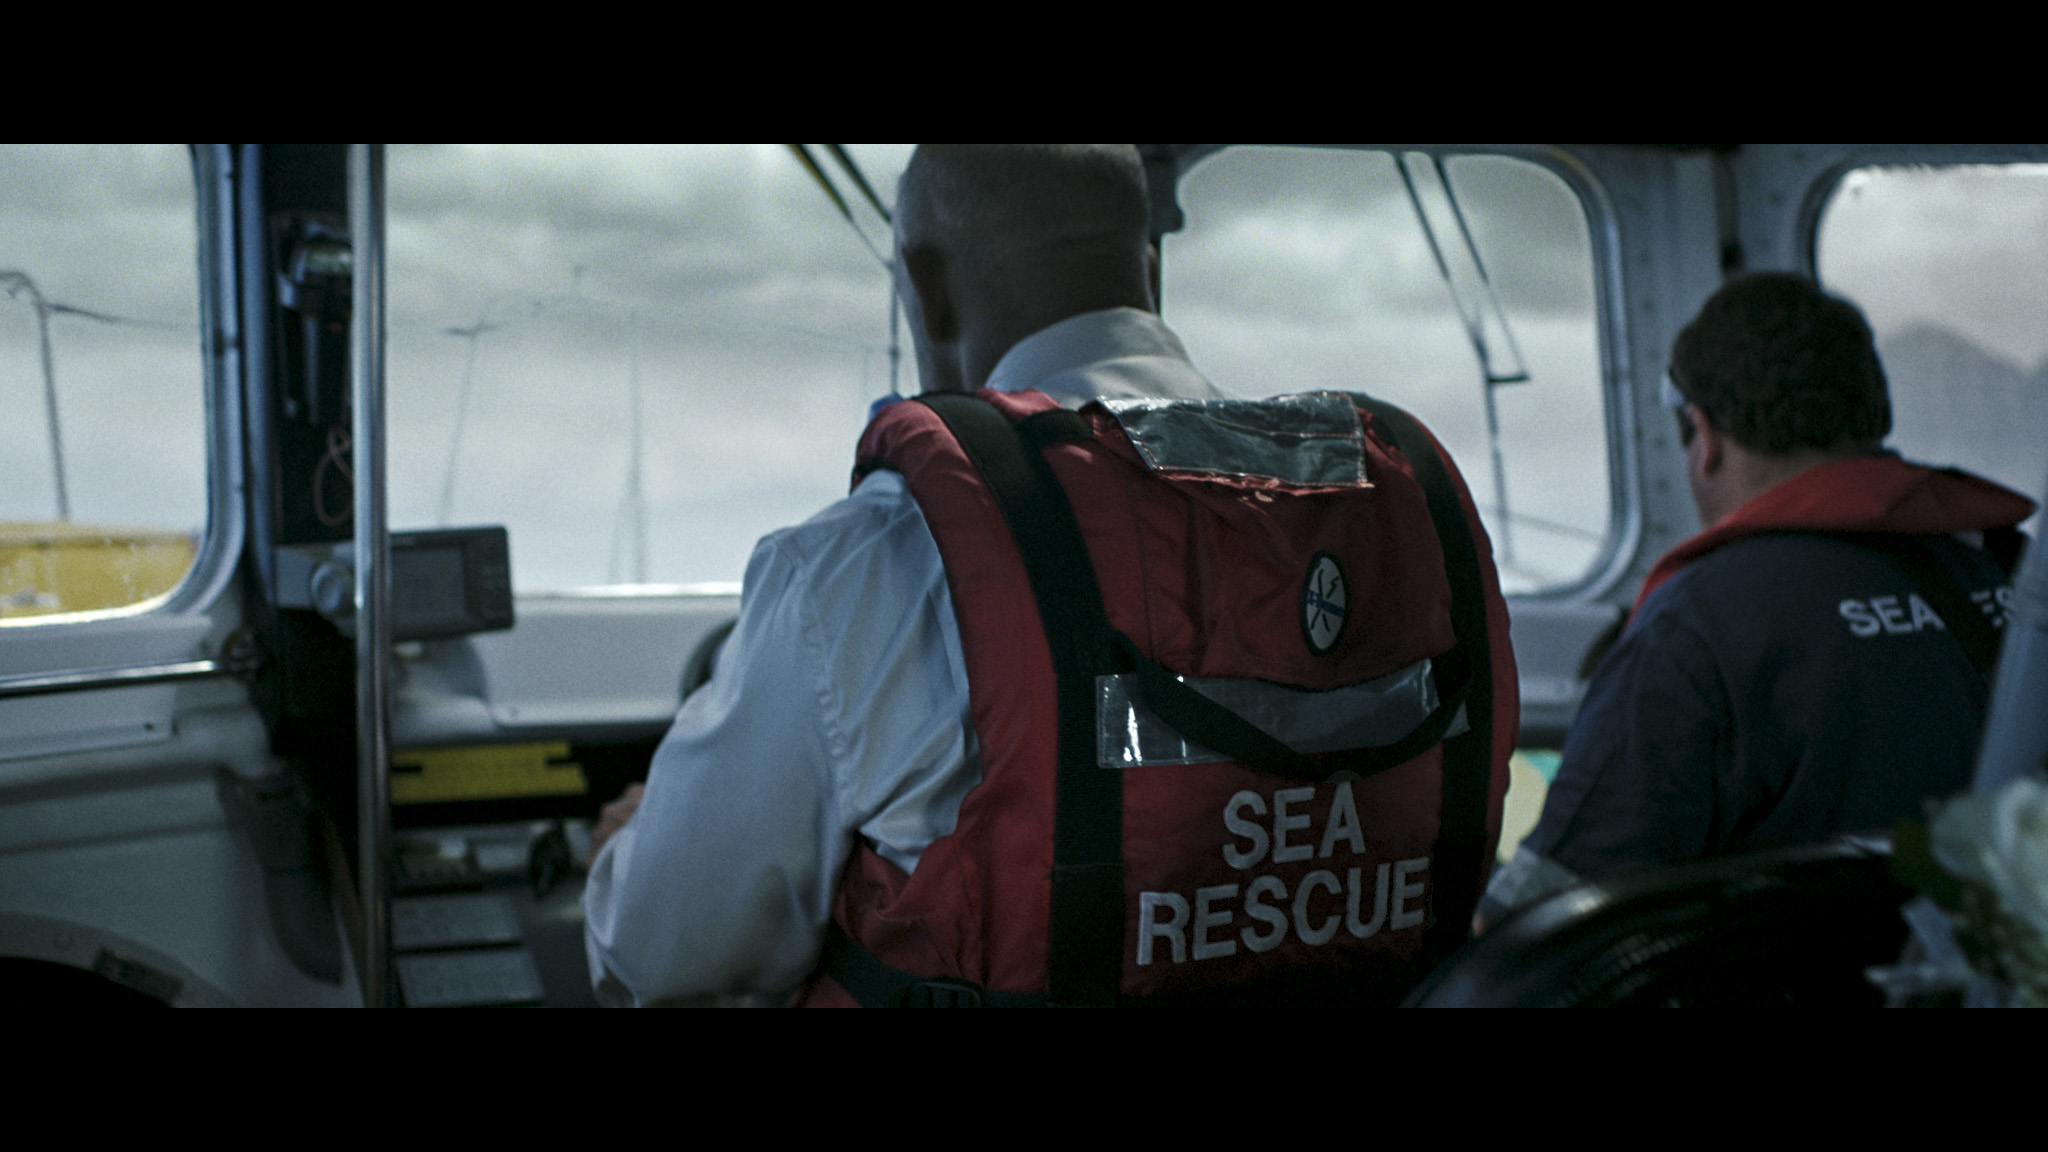 Advertising Industry salutes NSRI's 50 years - NSRI